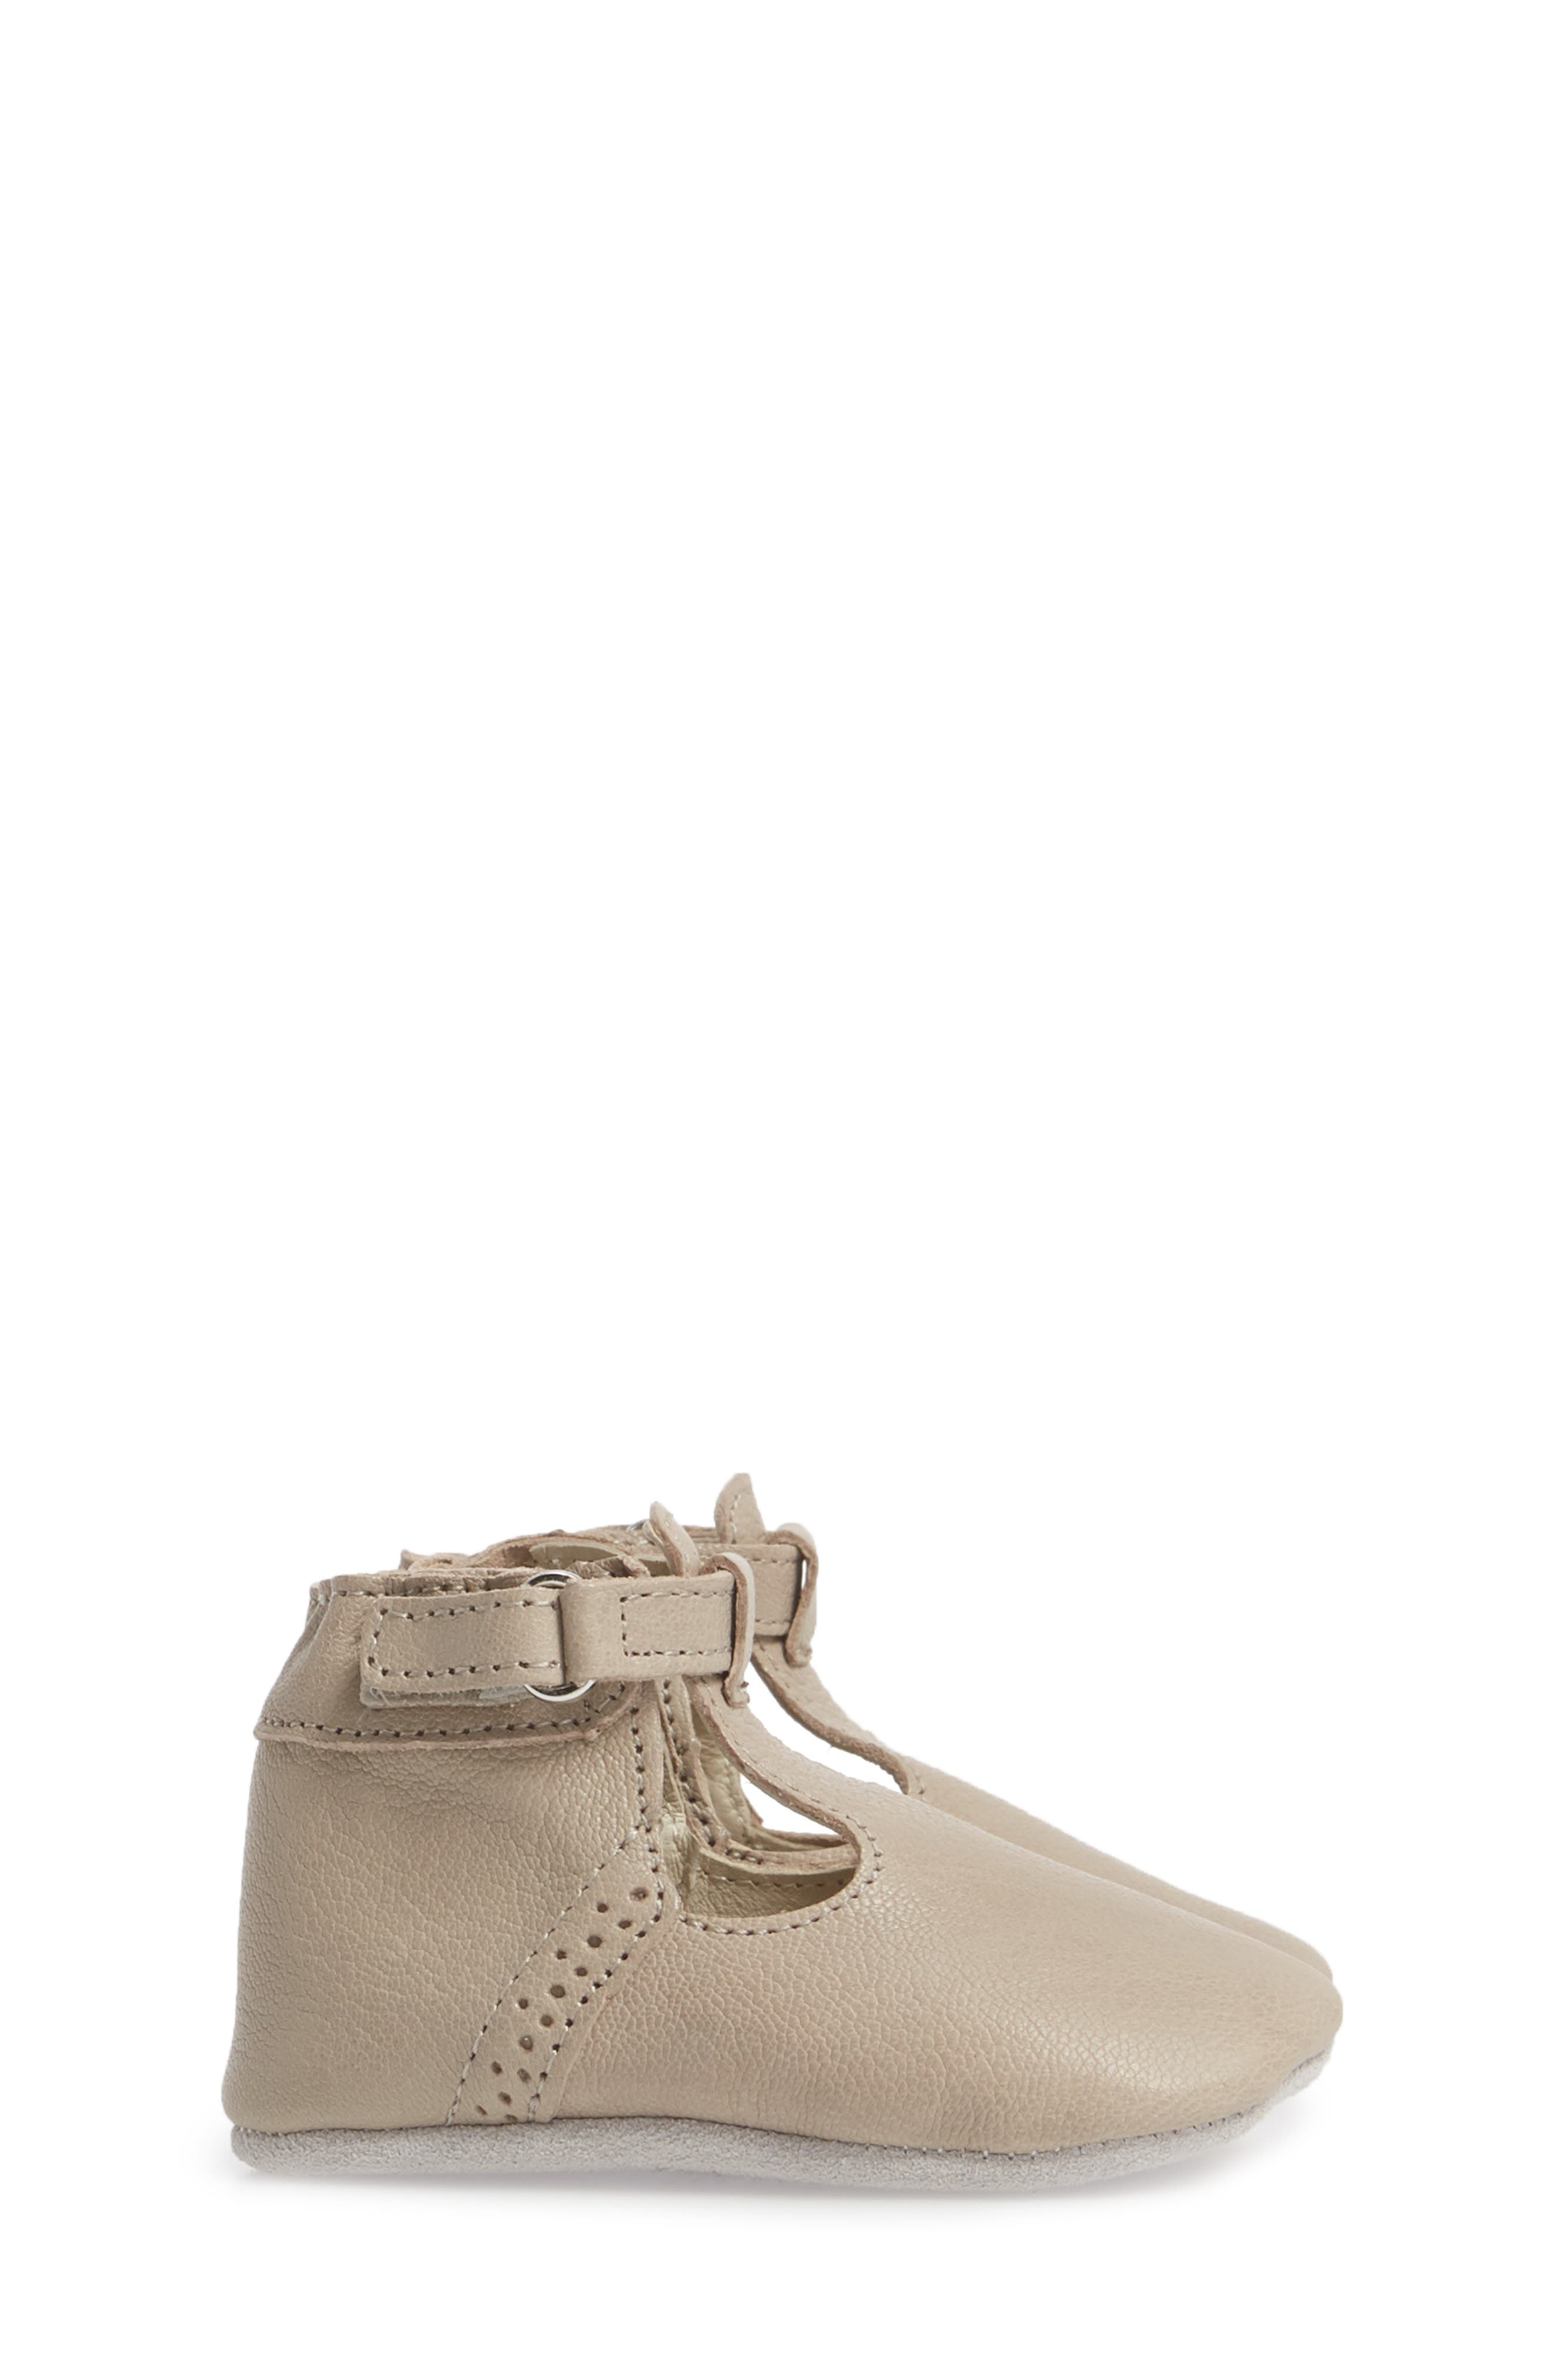 ROBEEZ<SUP>®</SUP>, Penny T-Strap Mary Jane Crib Shoe, Alternate thumbnail 3, color, TAUPE